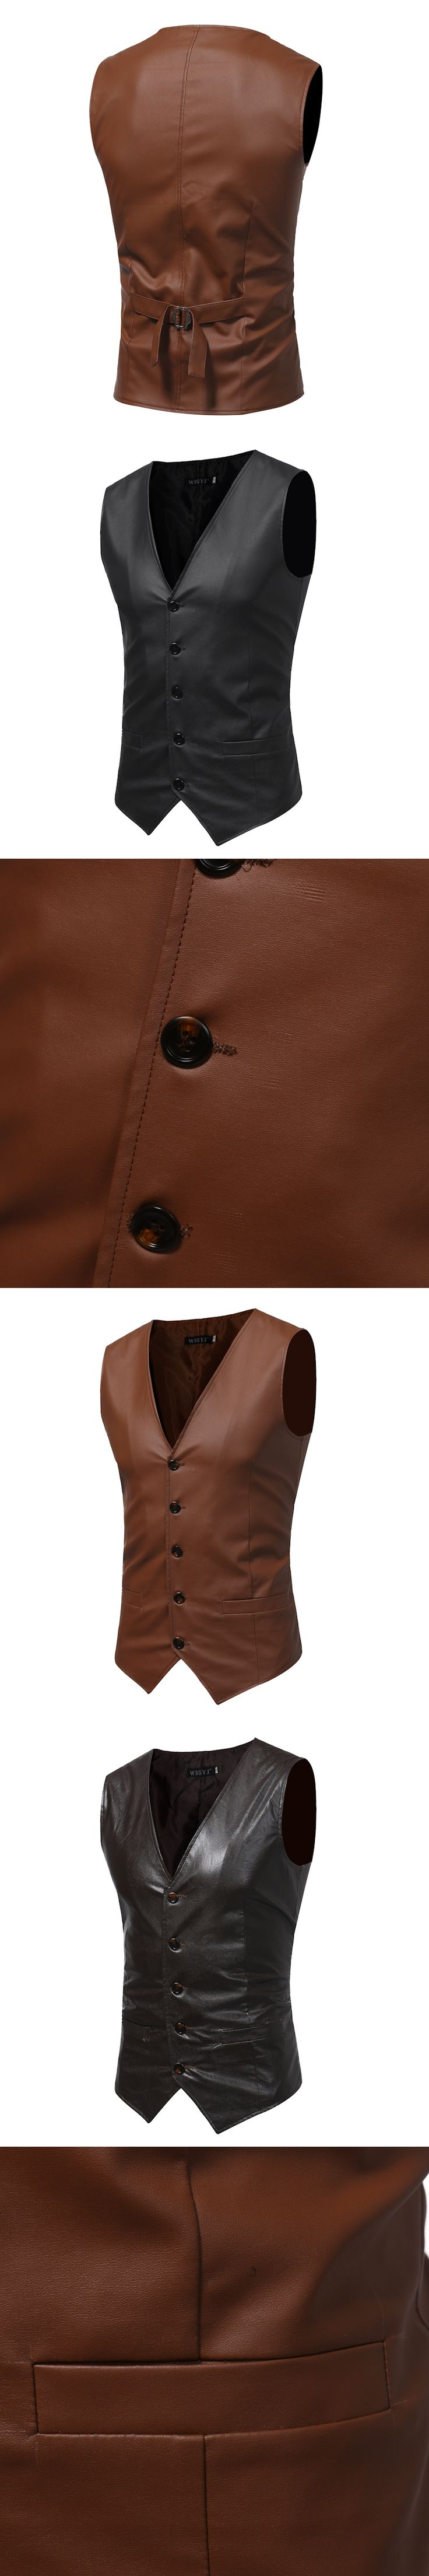 Men's Vest 2017 Europe Design Masculino Sleeveless Formal Suit Vest Brown Leather Vintage Gilet V-Necked Slim Fit Wedding Dress